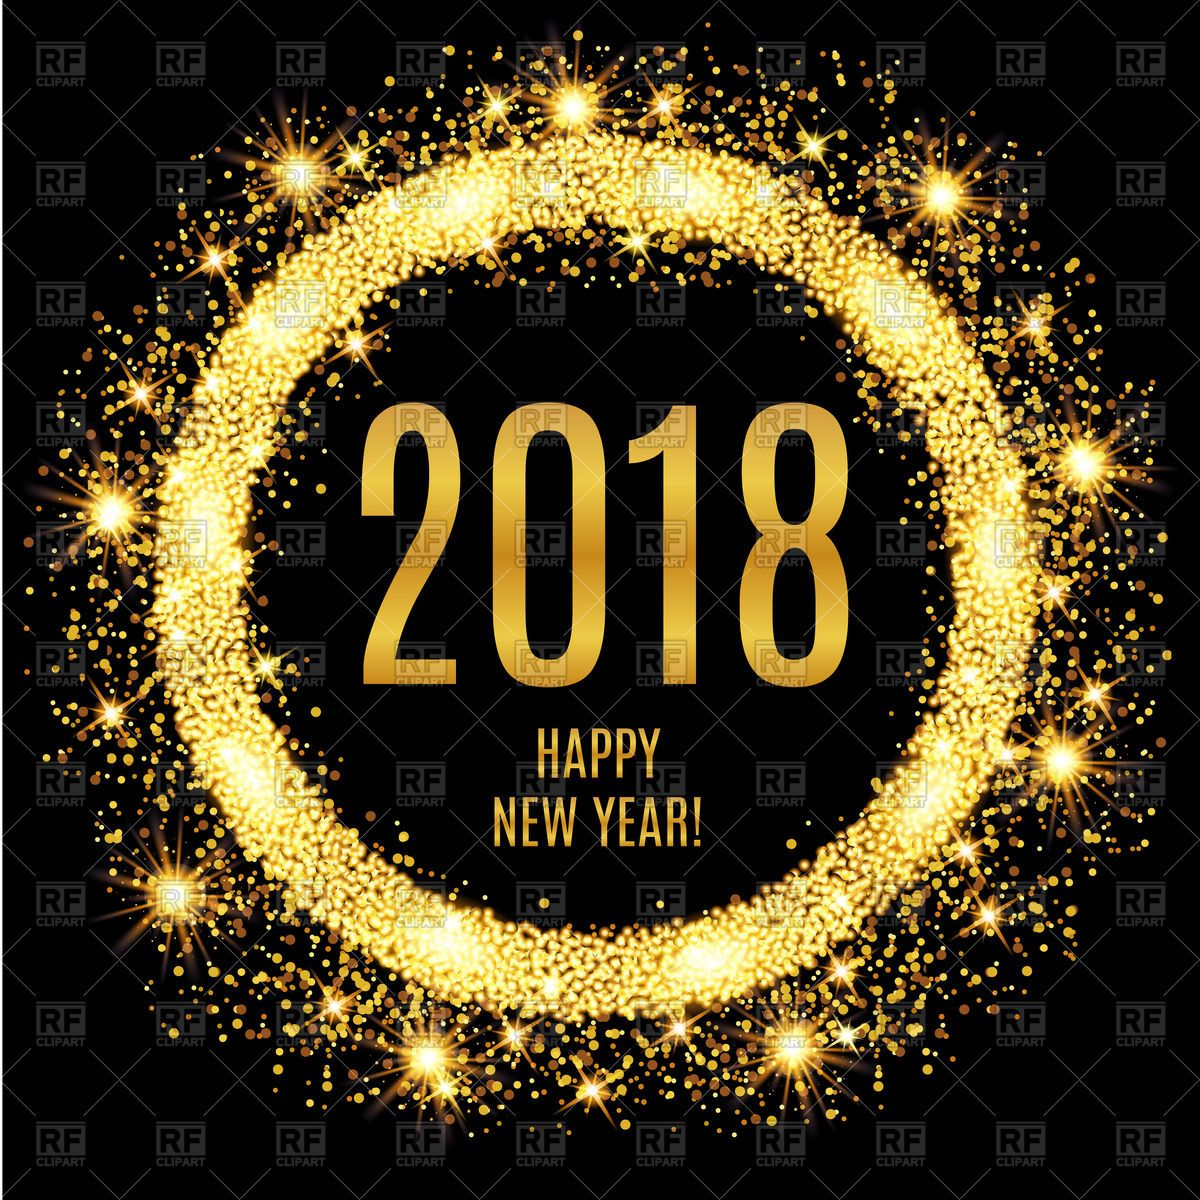 Vector Image Of 2018 Happy New Year Glowing Gold Background #153352  Includes Graphic Collections Of Gold And 2018. You Can Download This Image  In EPS And ...